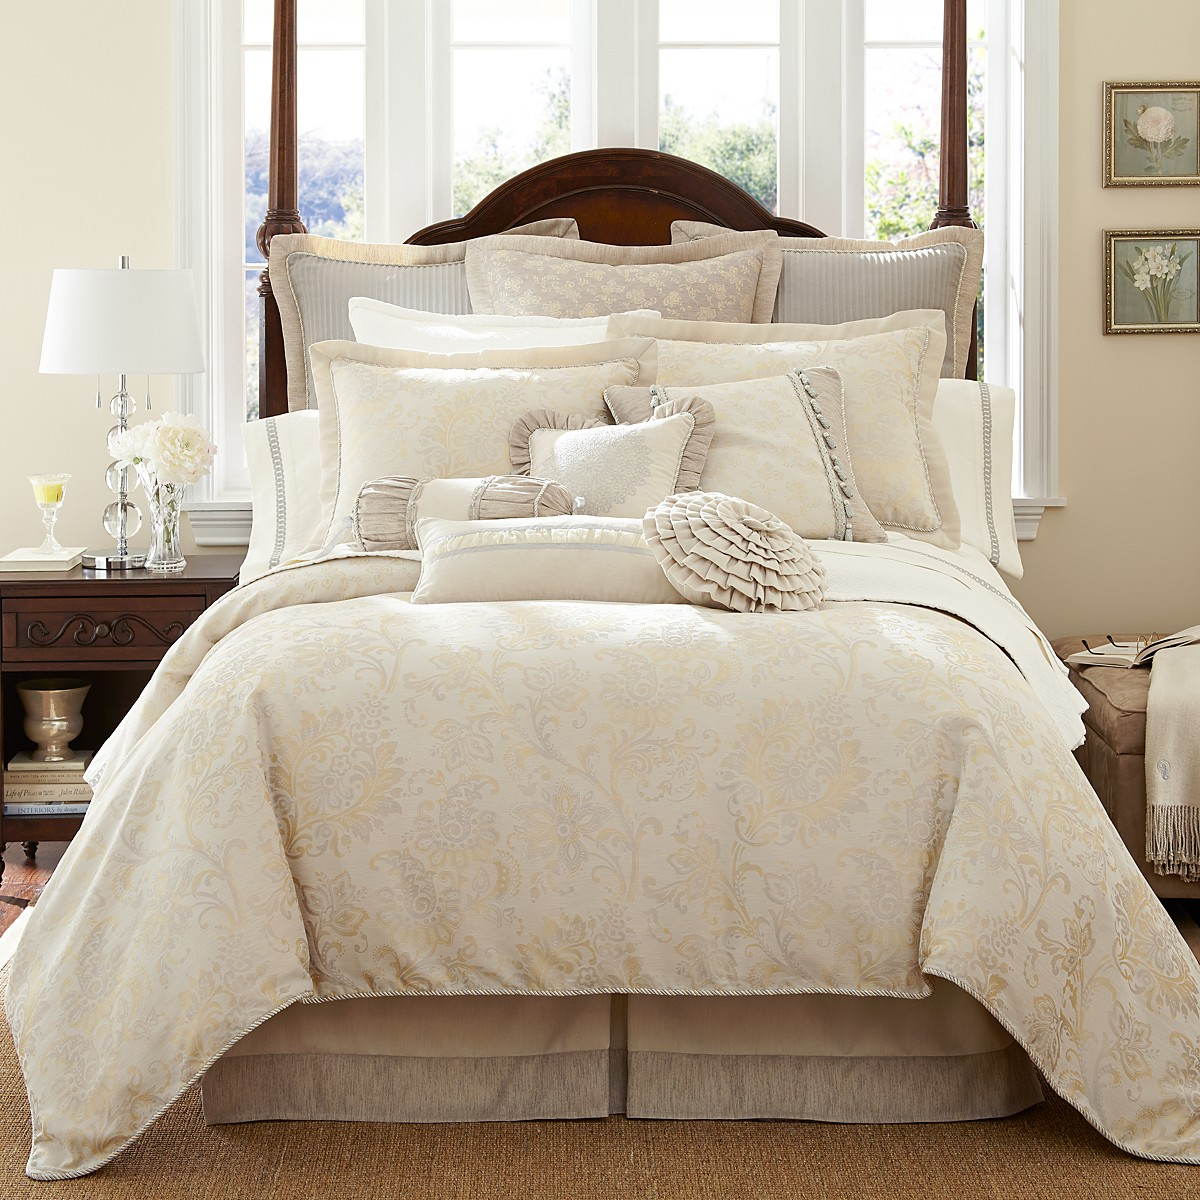 off bedding nursery colored set quilts also well beddings cover size burlap comforter of conjunction with in duvet lauren patterns conrad xl linen plus cream as ivory bouquet french rustic king twin white sets full